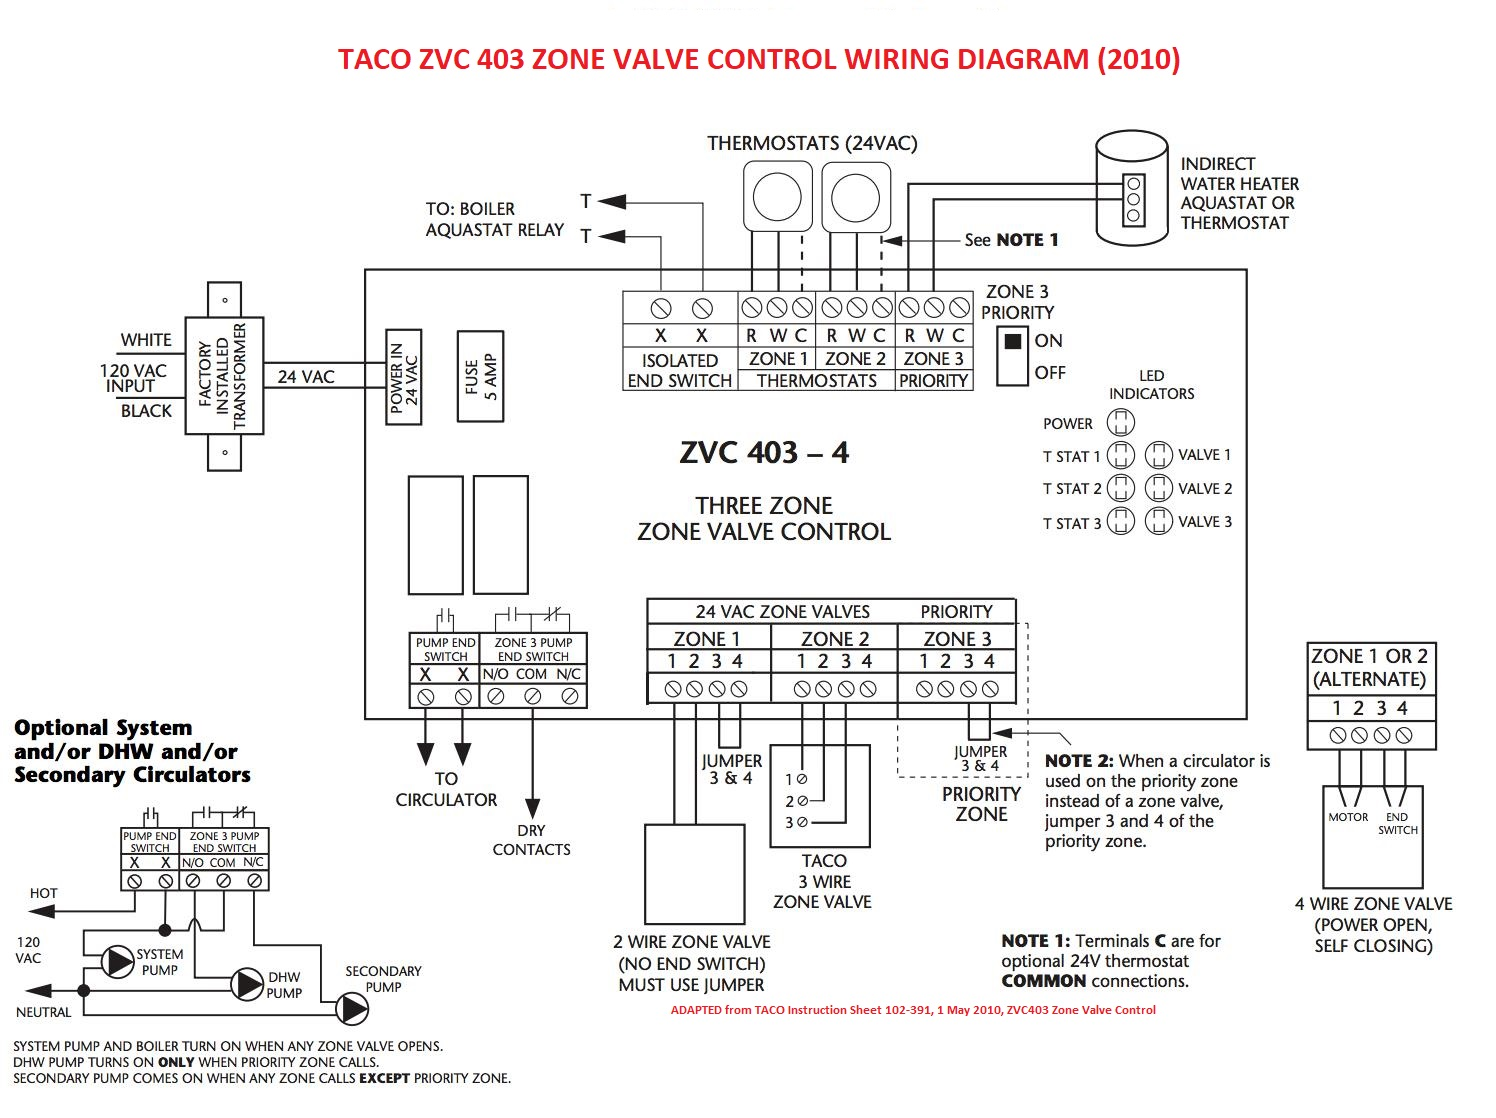 zone valve wiring installation & instructions guide to heating water irrigation wiring diagrams taci zvc493 wiring diagram click to enlarge at inspectapedia com